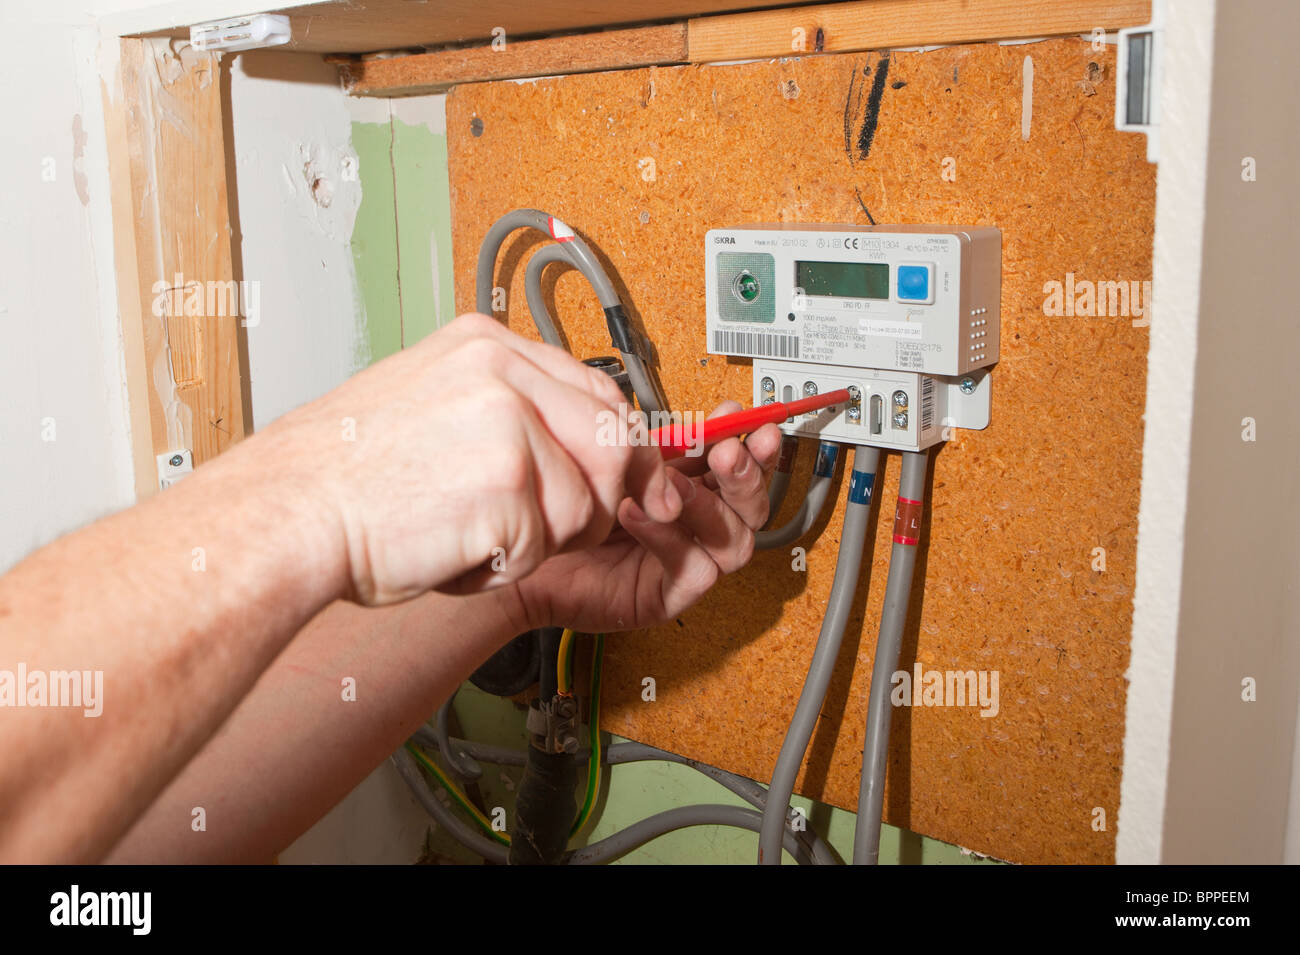 An electrician fitting a new digital electric meter in the Uk - Stock Image